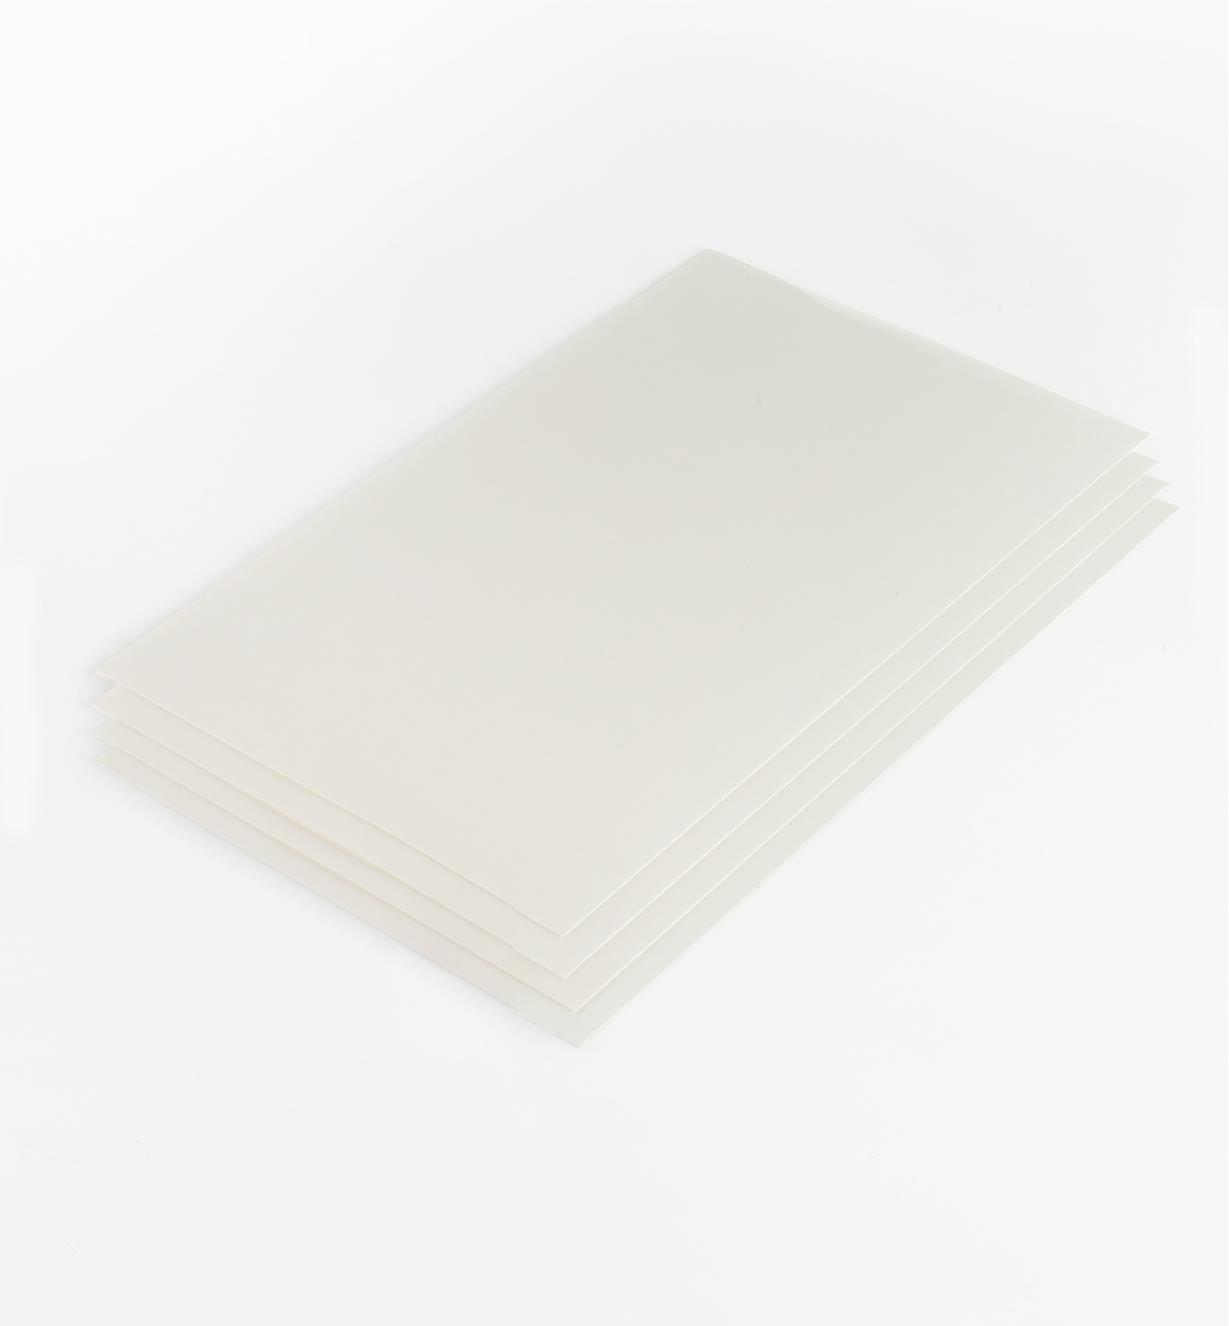 05M2011 - Laminate Sheets, pkg. of 4